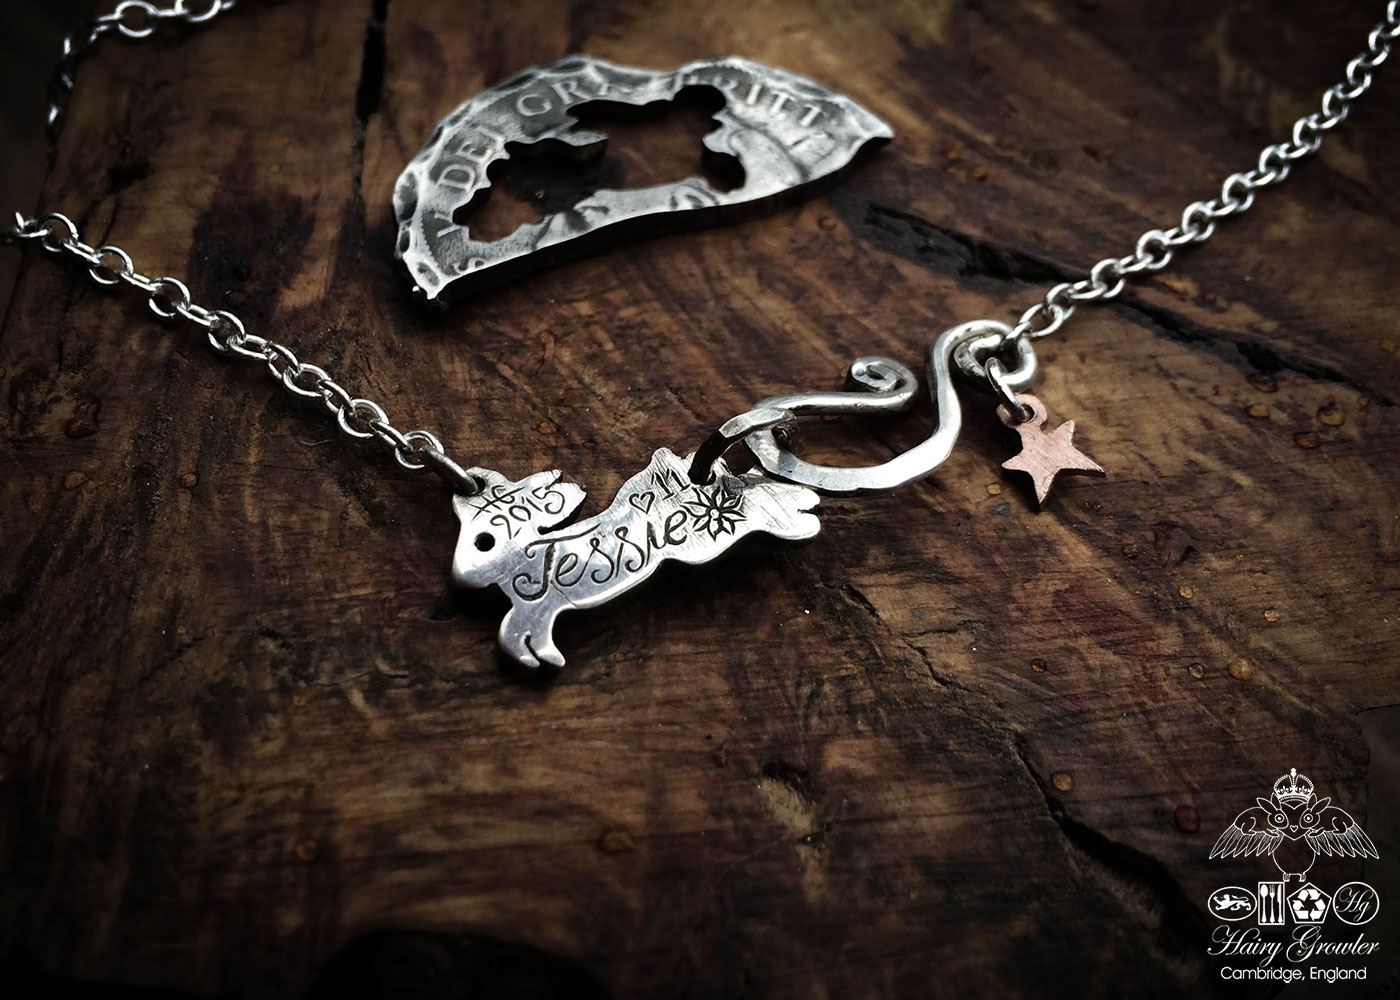 moon rabbit necklace individually handmade and recycled from an old Victorian silver coins